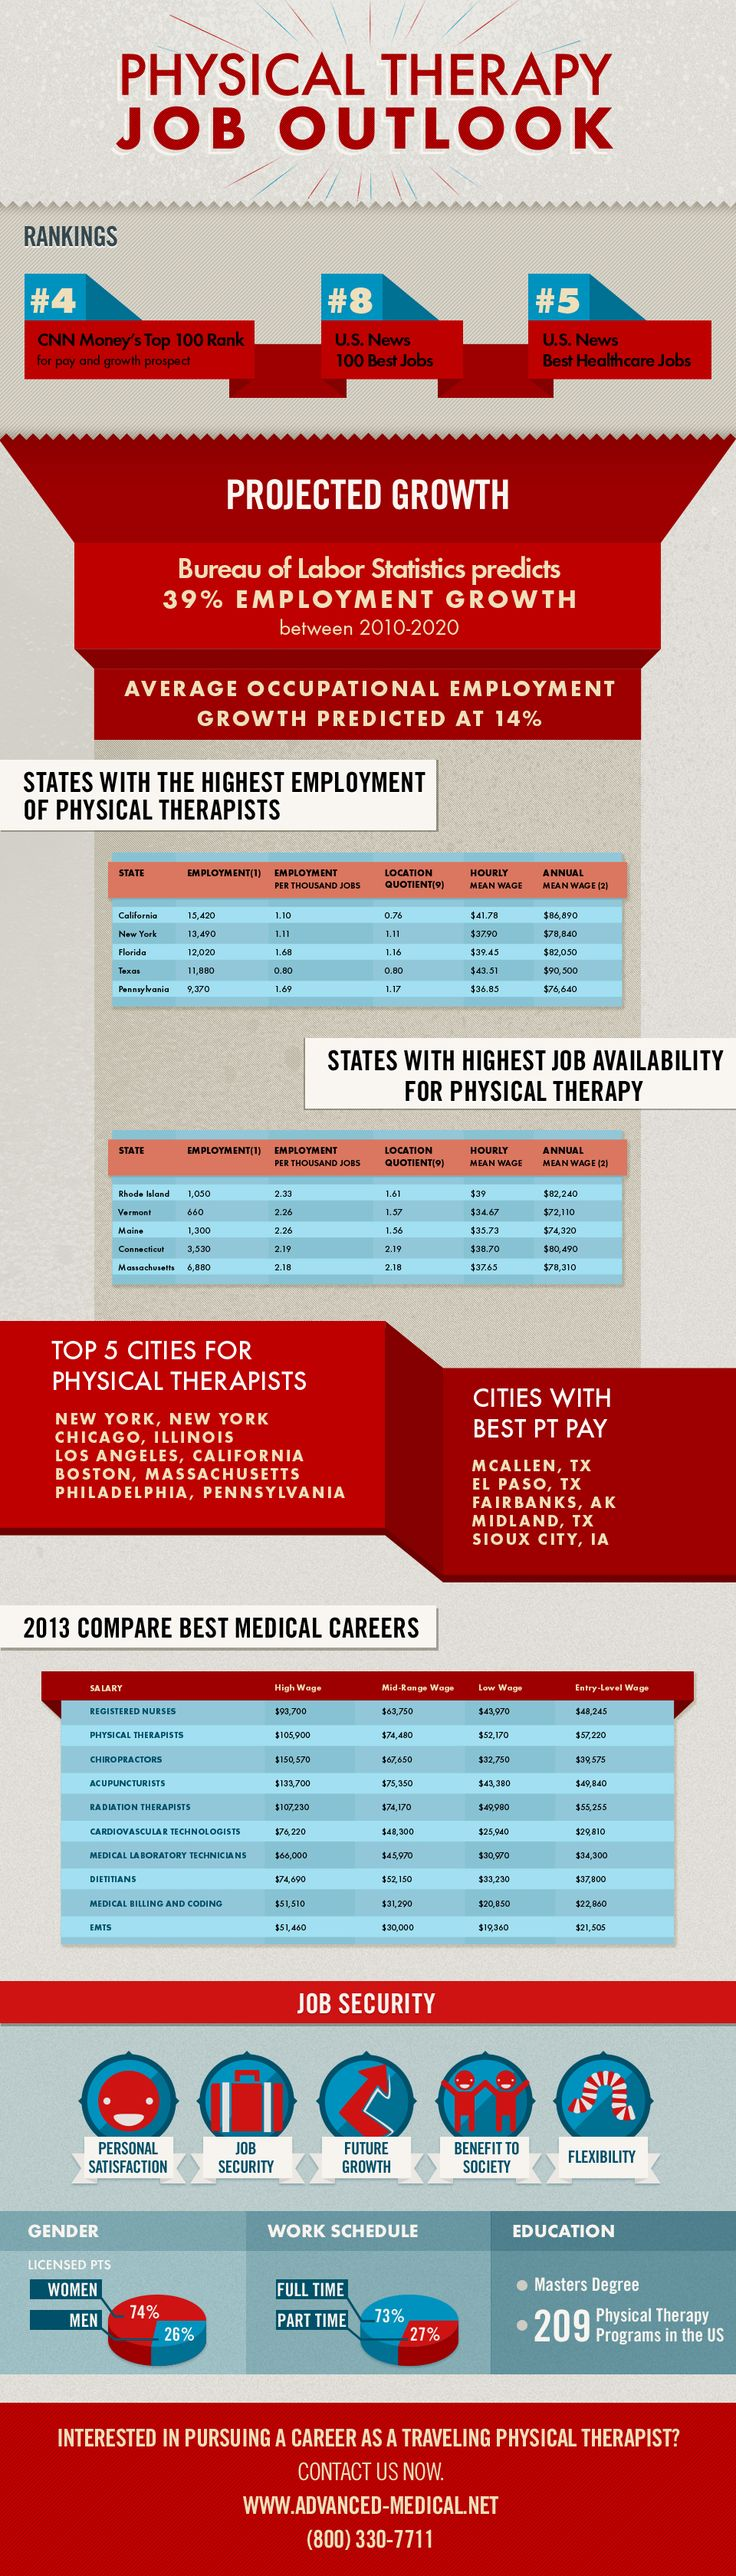 Physical Therapy Job outlook.  View cities with highest job demands, learn job satisfaction, wages, and more.  Travel physical therapy jobs at Advanced Medical